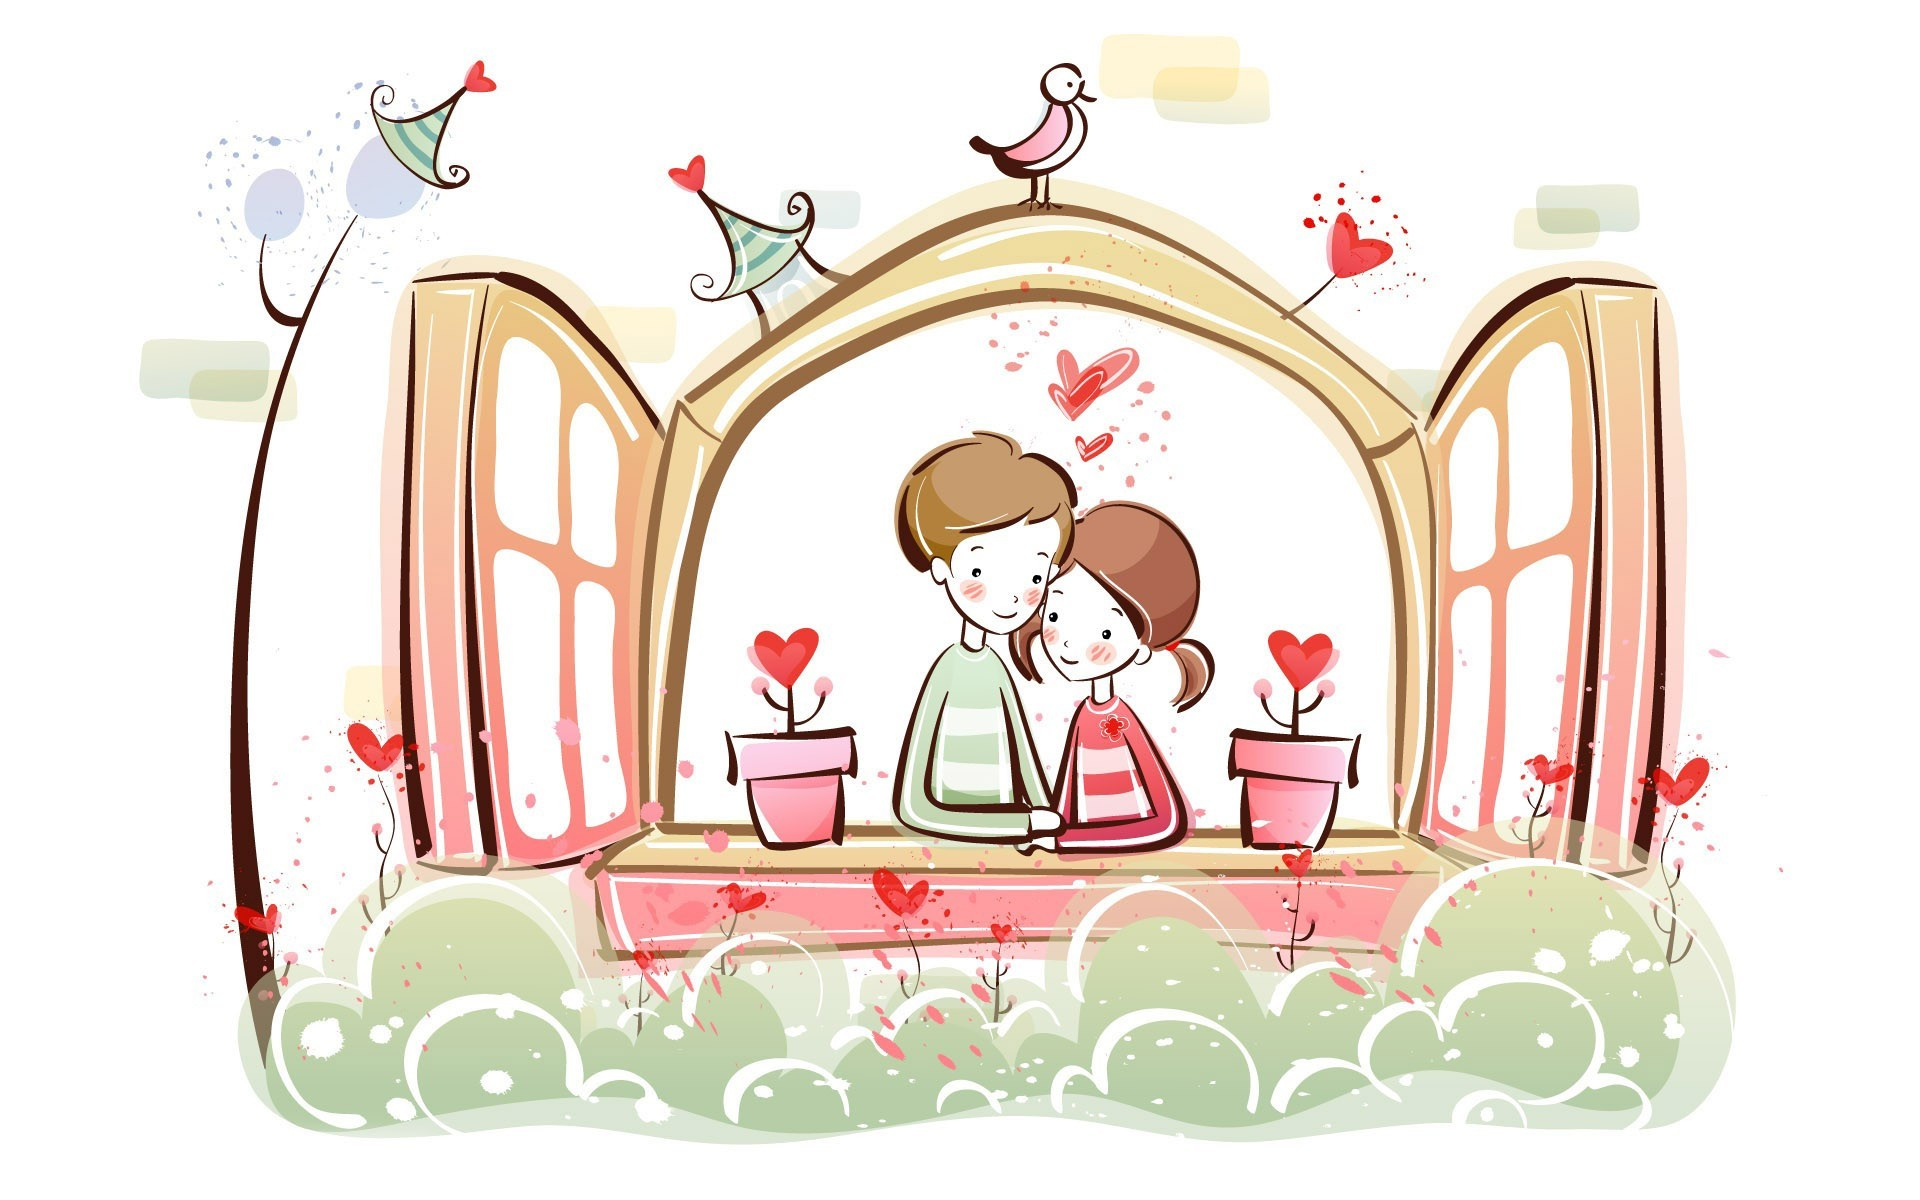 Love New cute cartoon Wallpaper : cartoon Love Wallpaper - Wallpaper, High Definition, High Quality, Widescreen